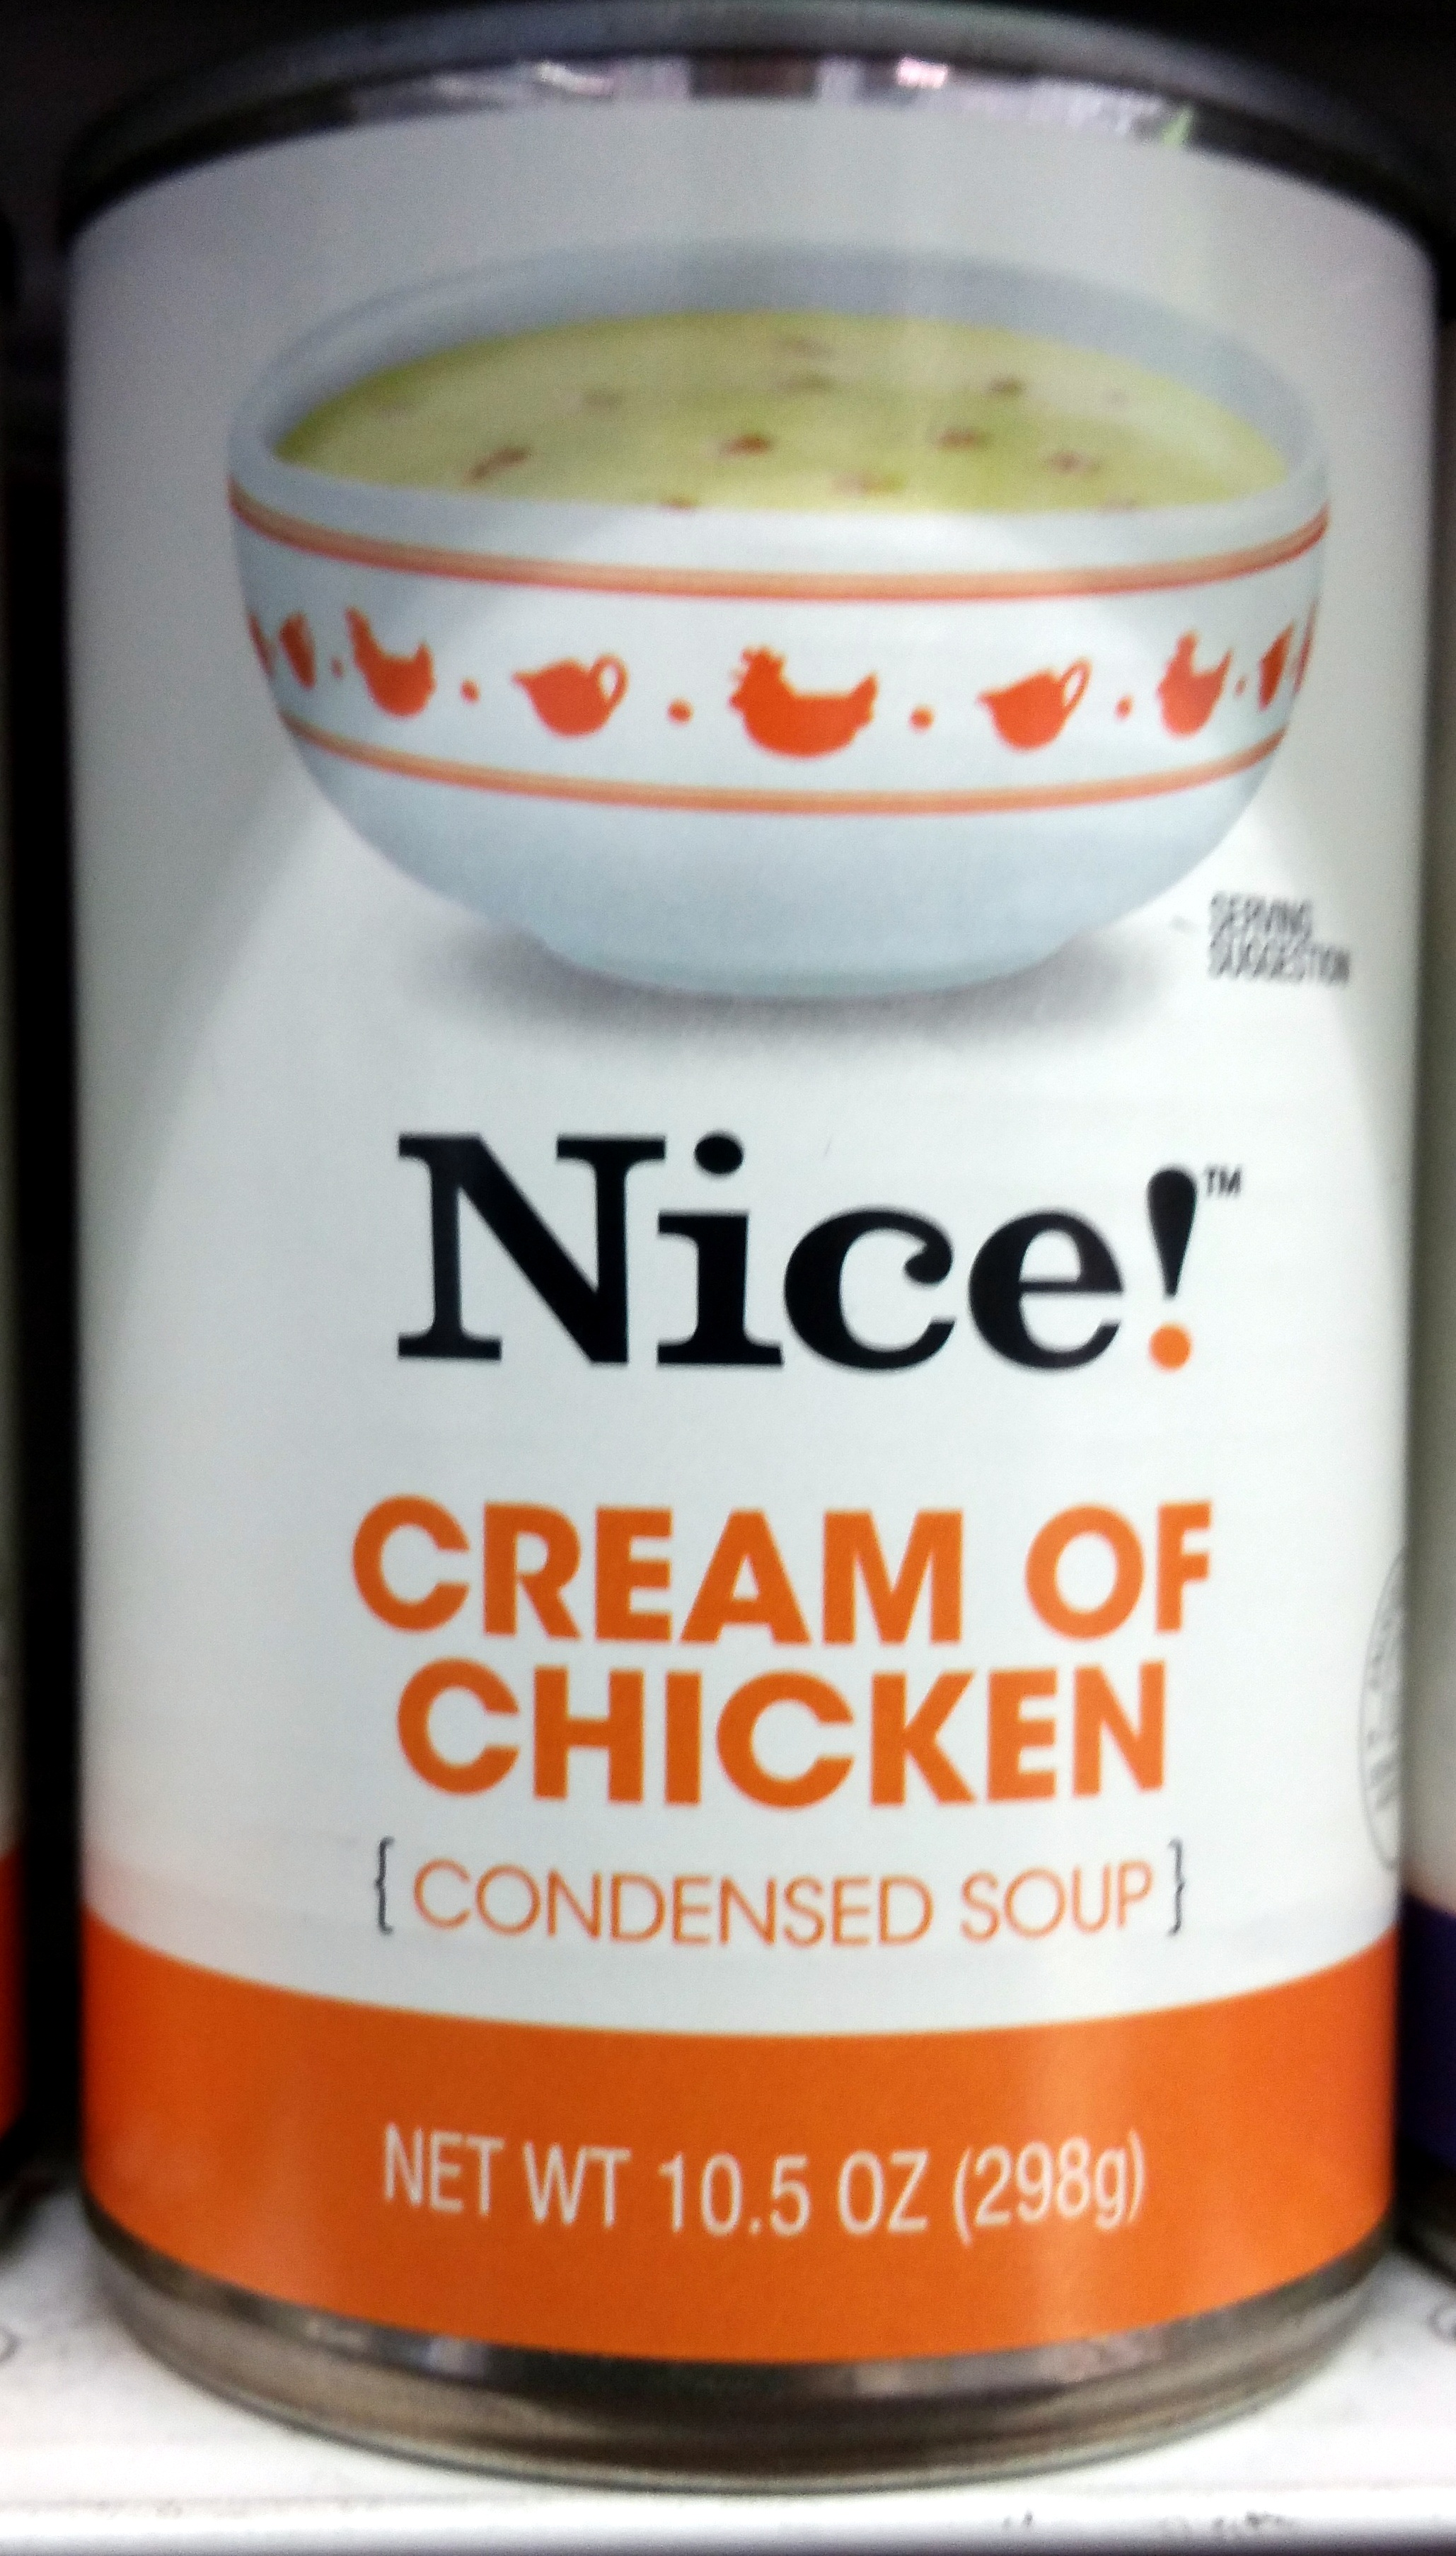 Cream of Chicken [Condensed Soup] - Product